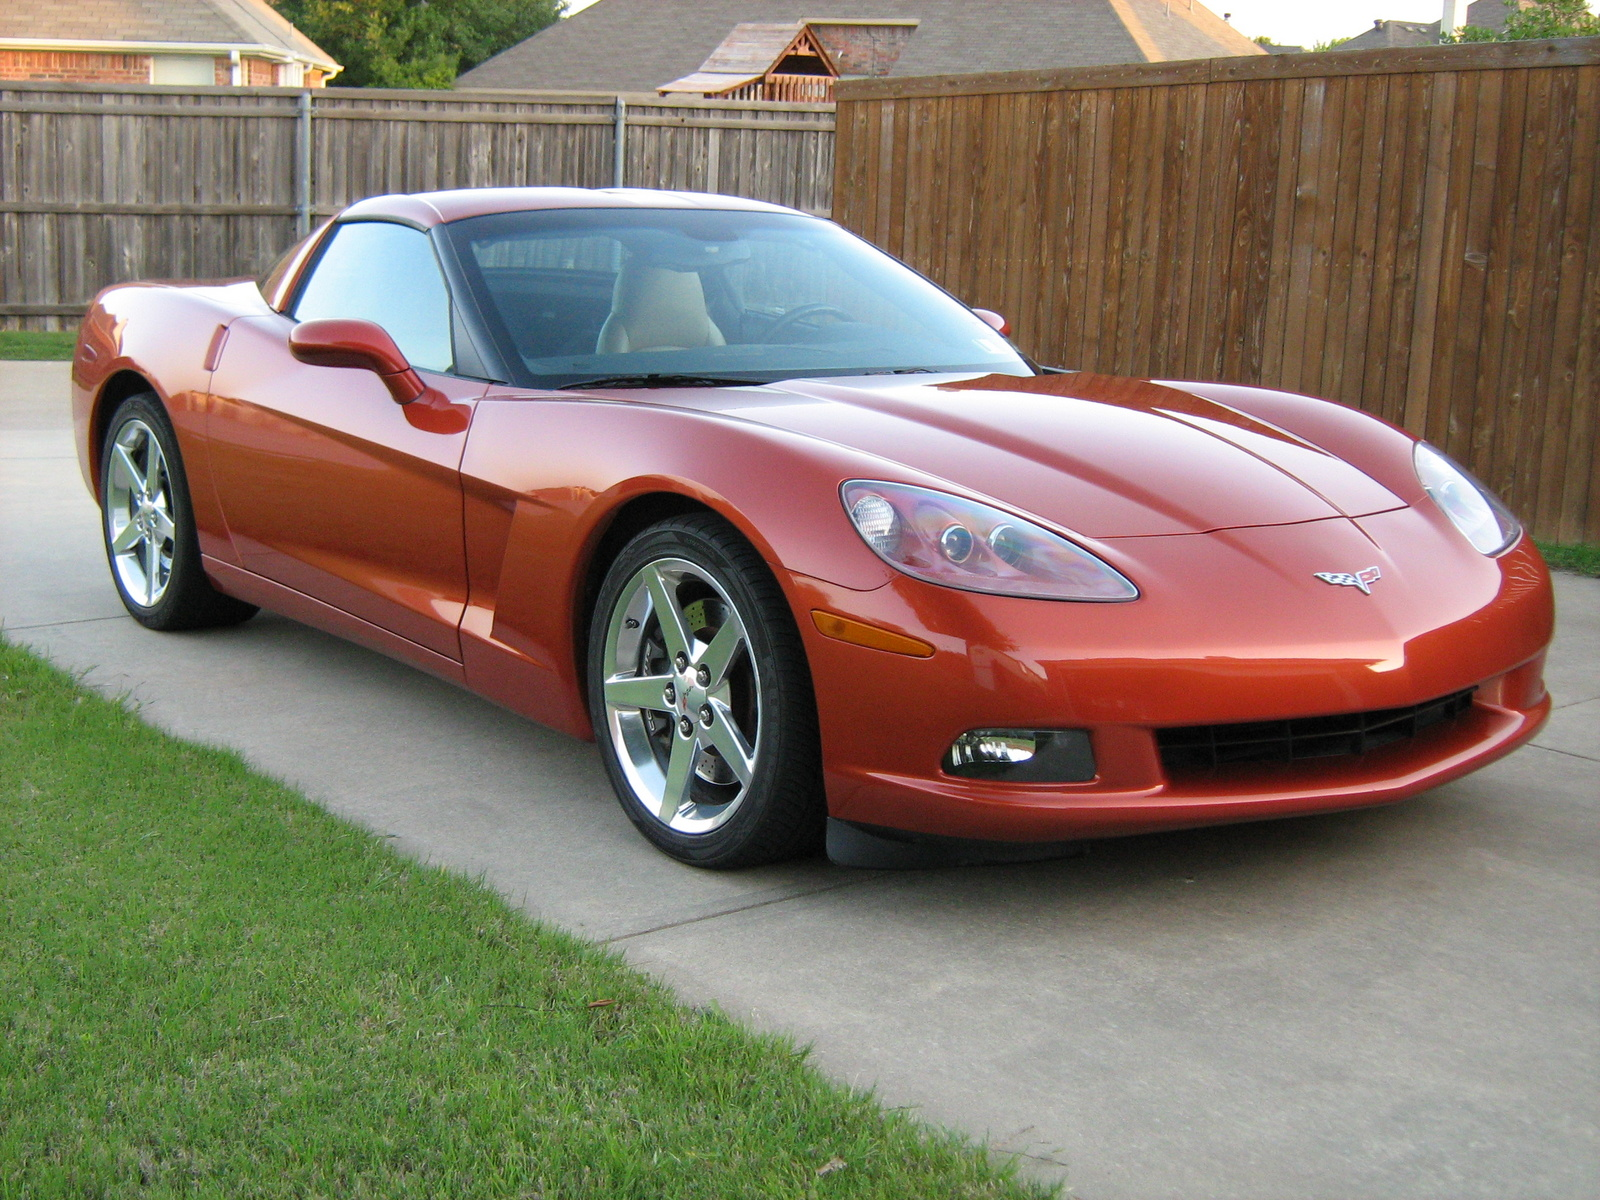 2005 Chevrolet Corvette Coupe, Picture of 2005 Chevrolet Corvette Base